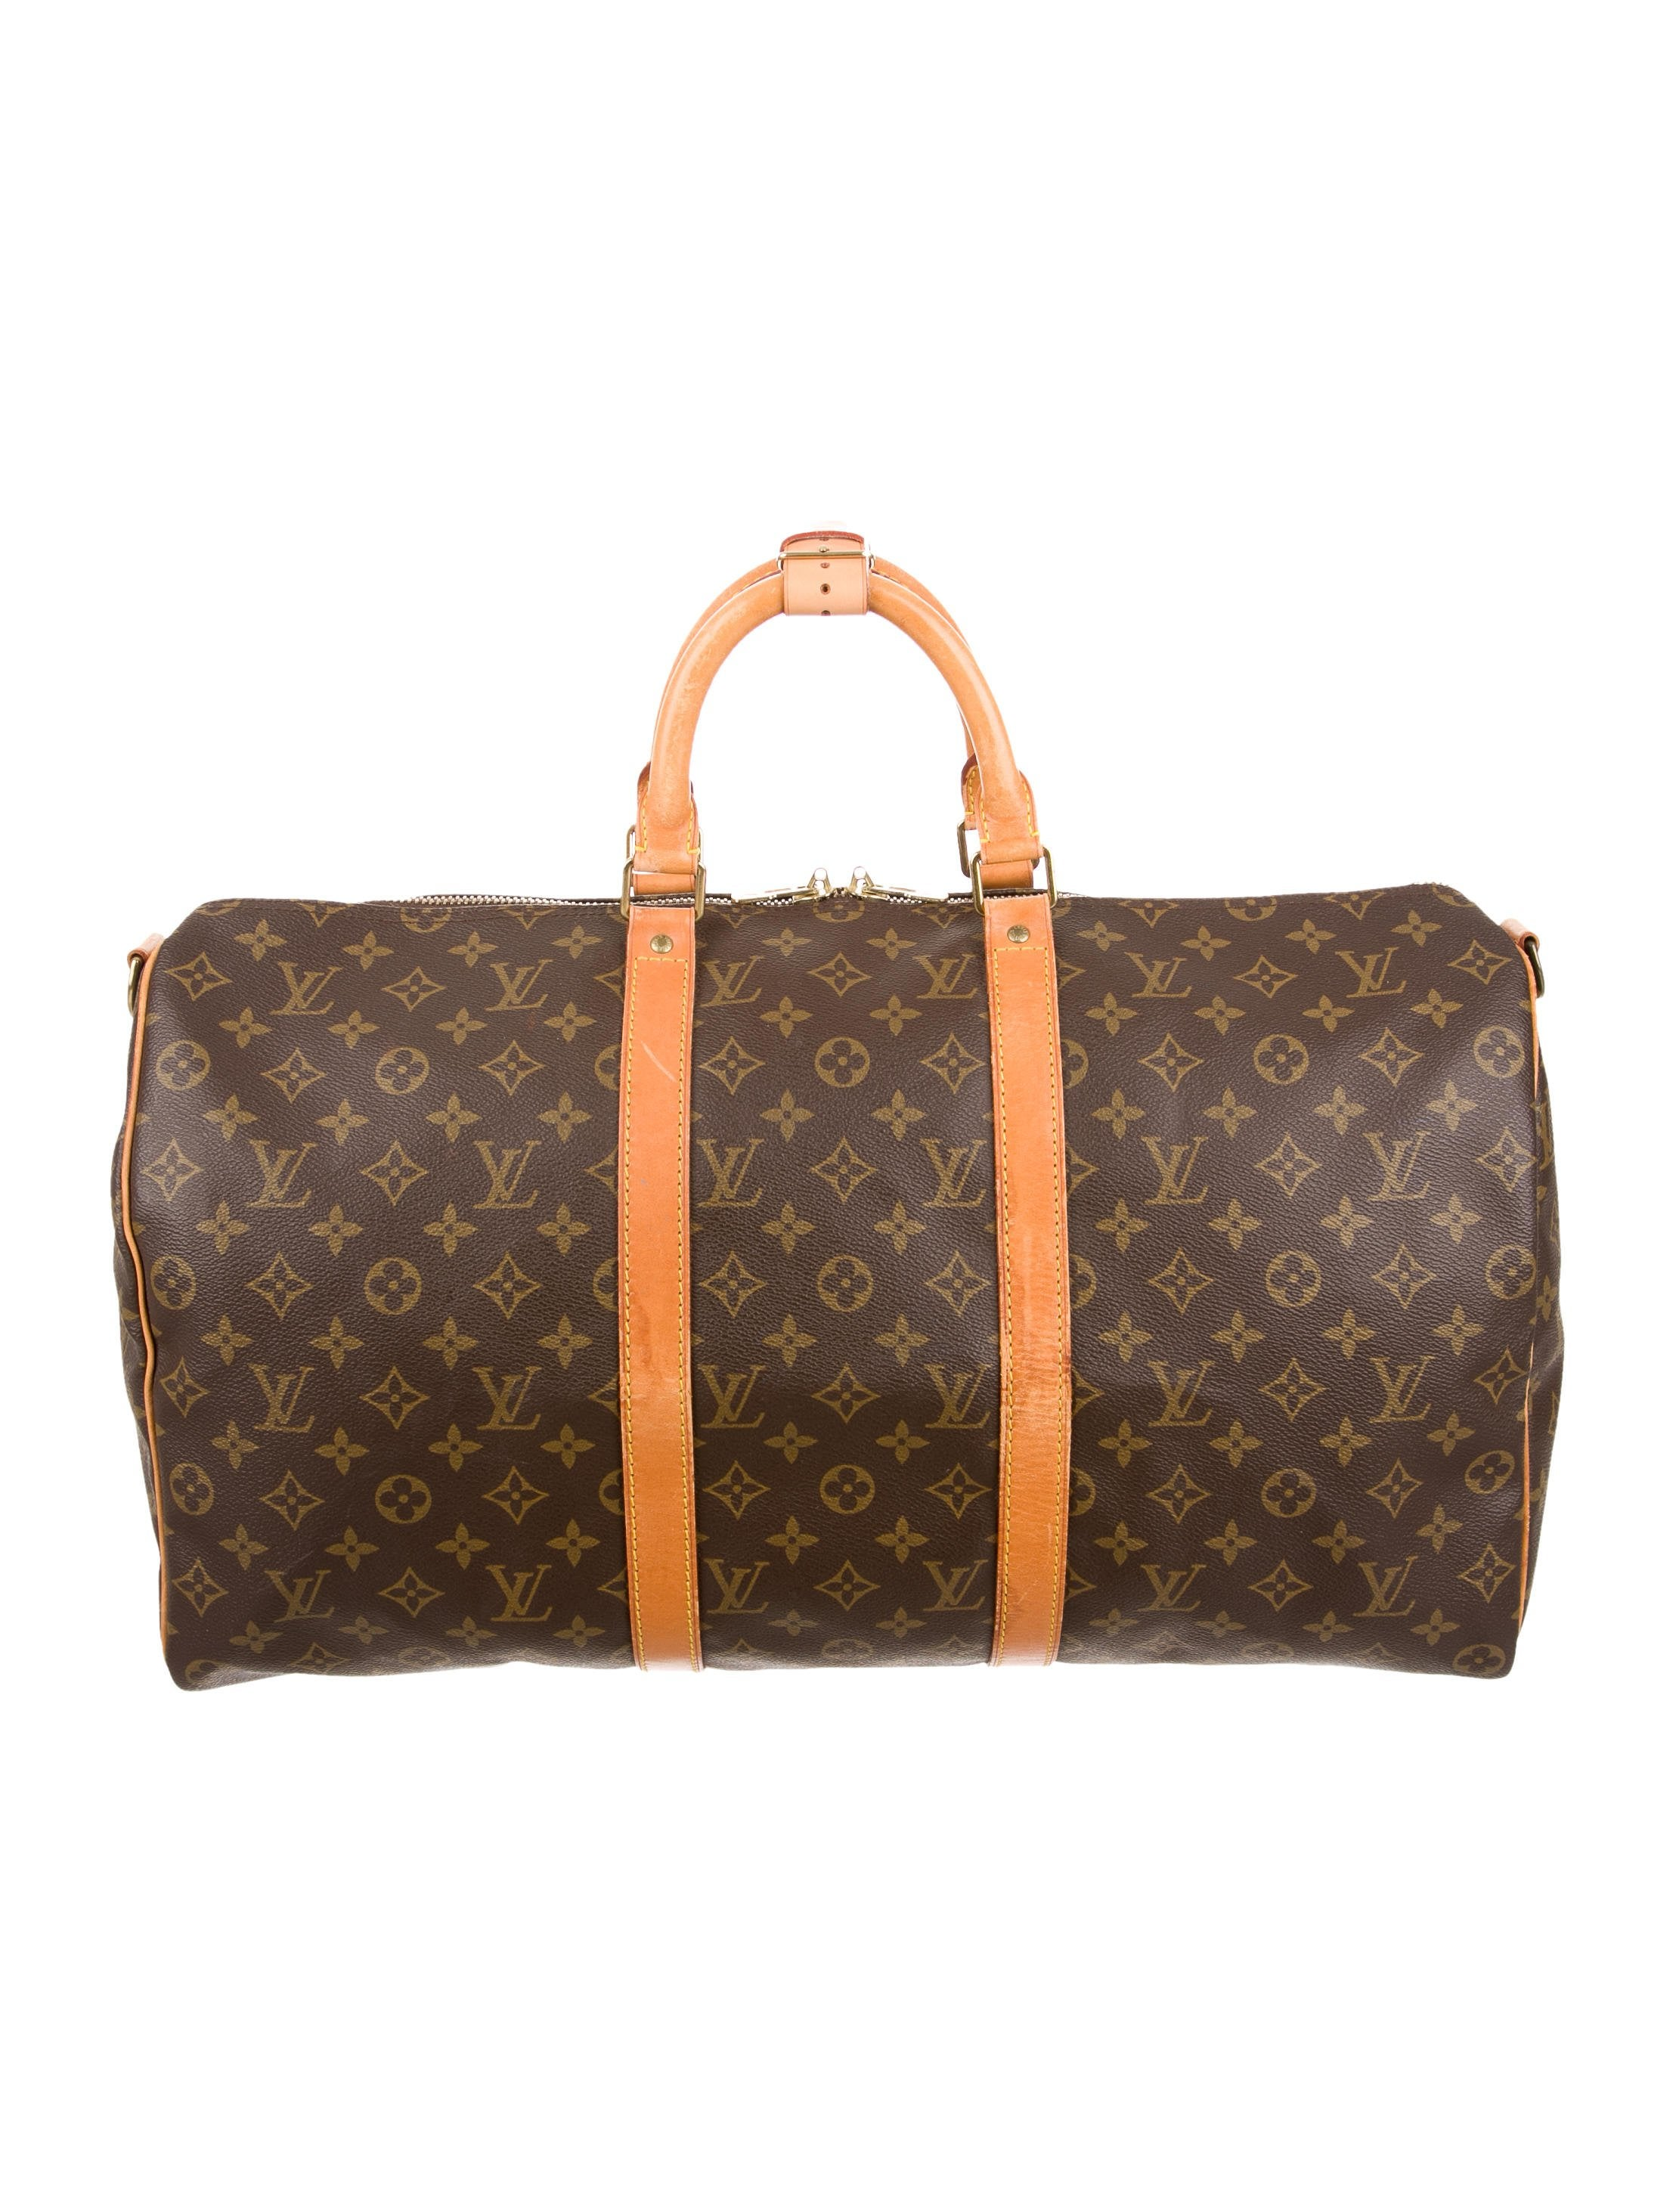 louis vuitton monogram keepall 50 handbags lou125844. Black Bedroom Furniture Sets. Home Design Ideas